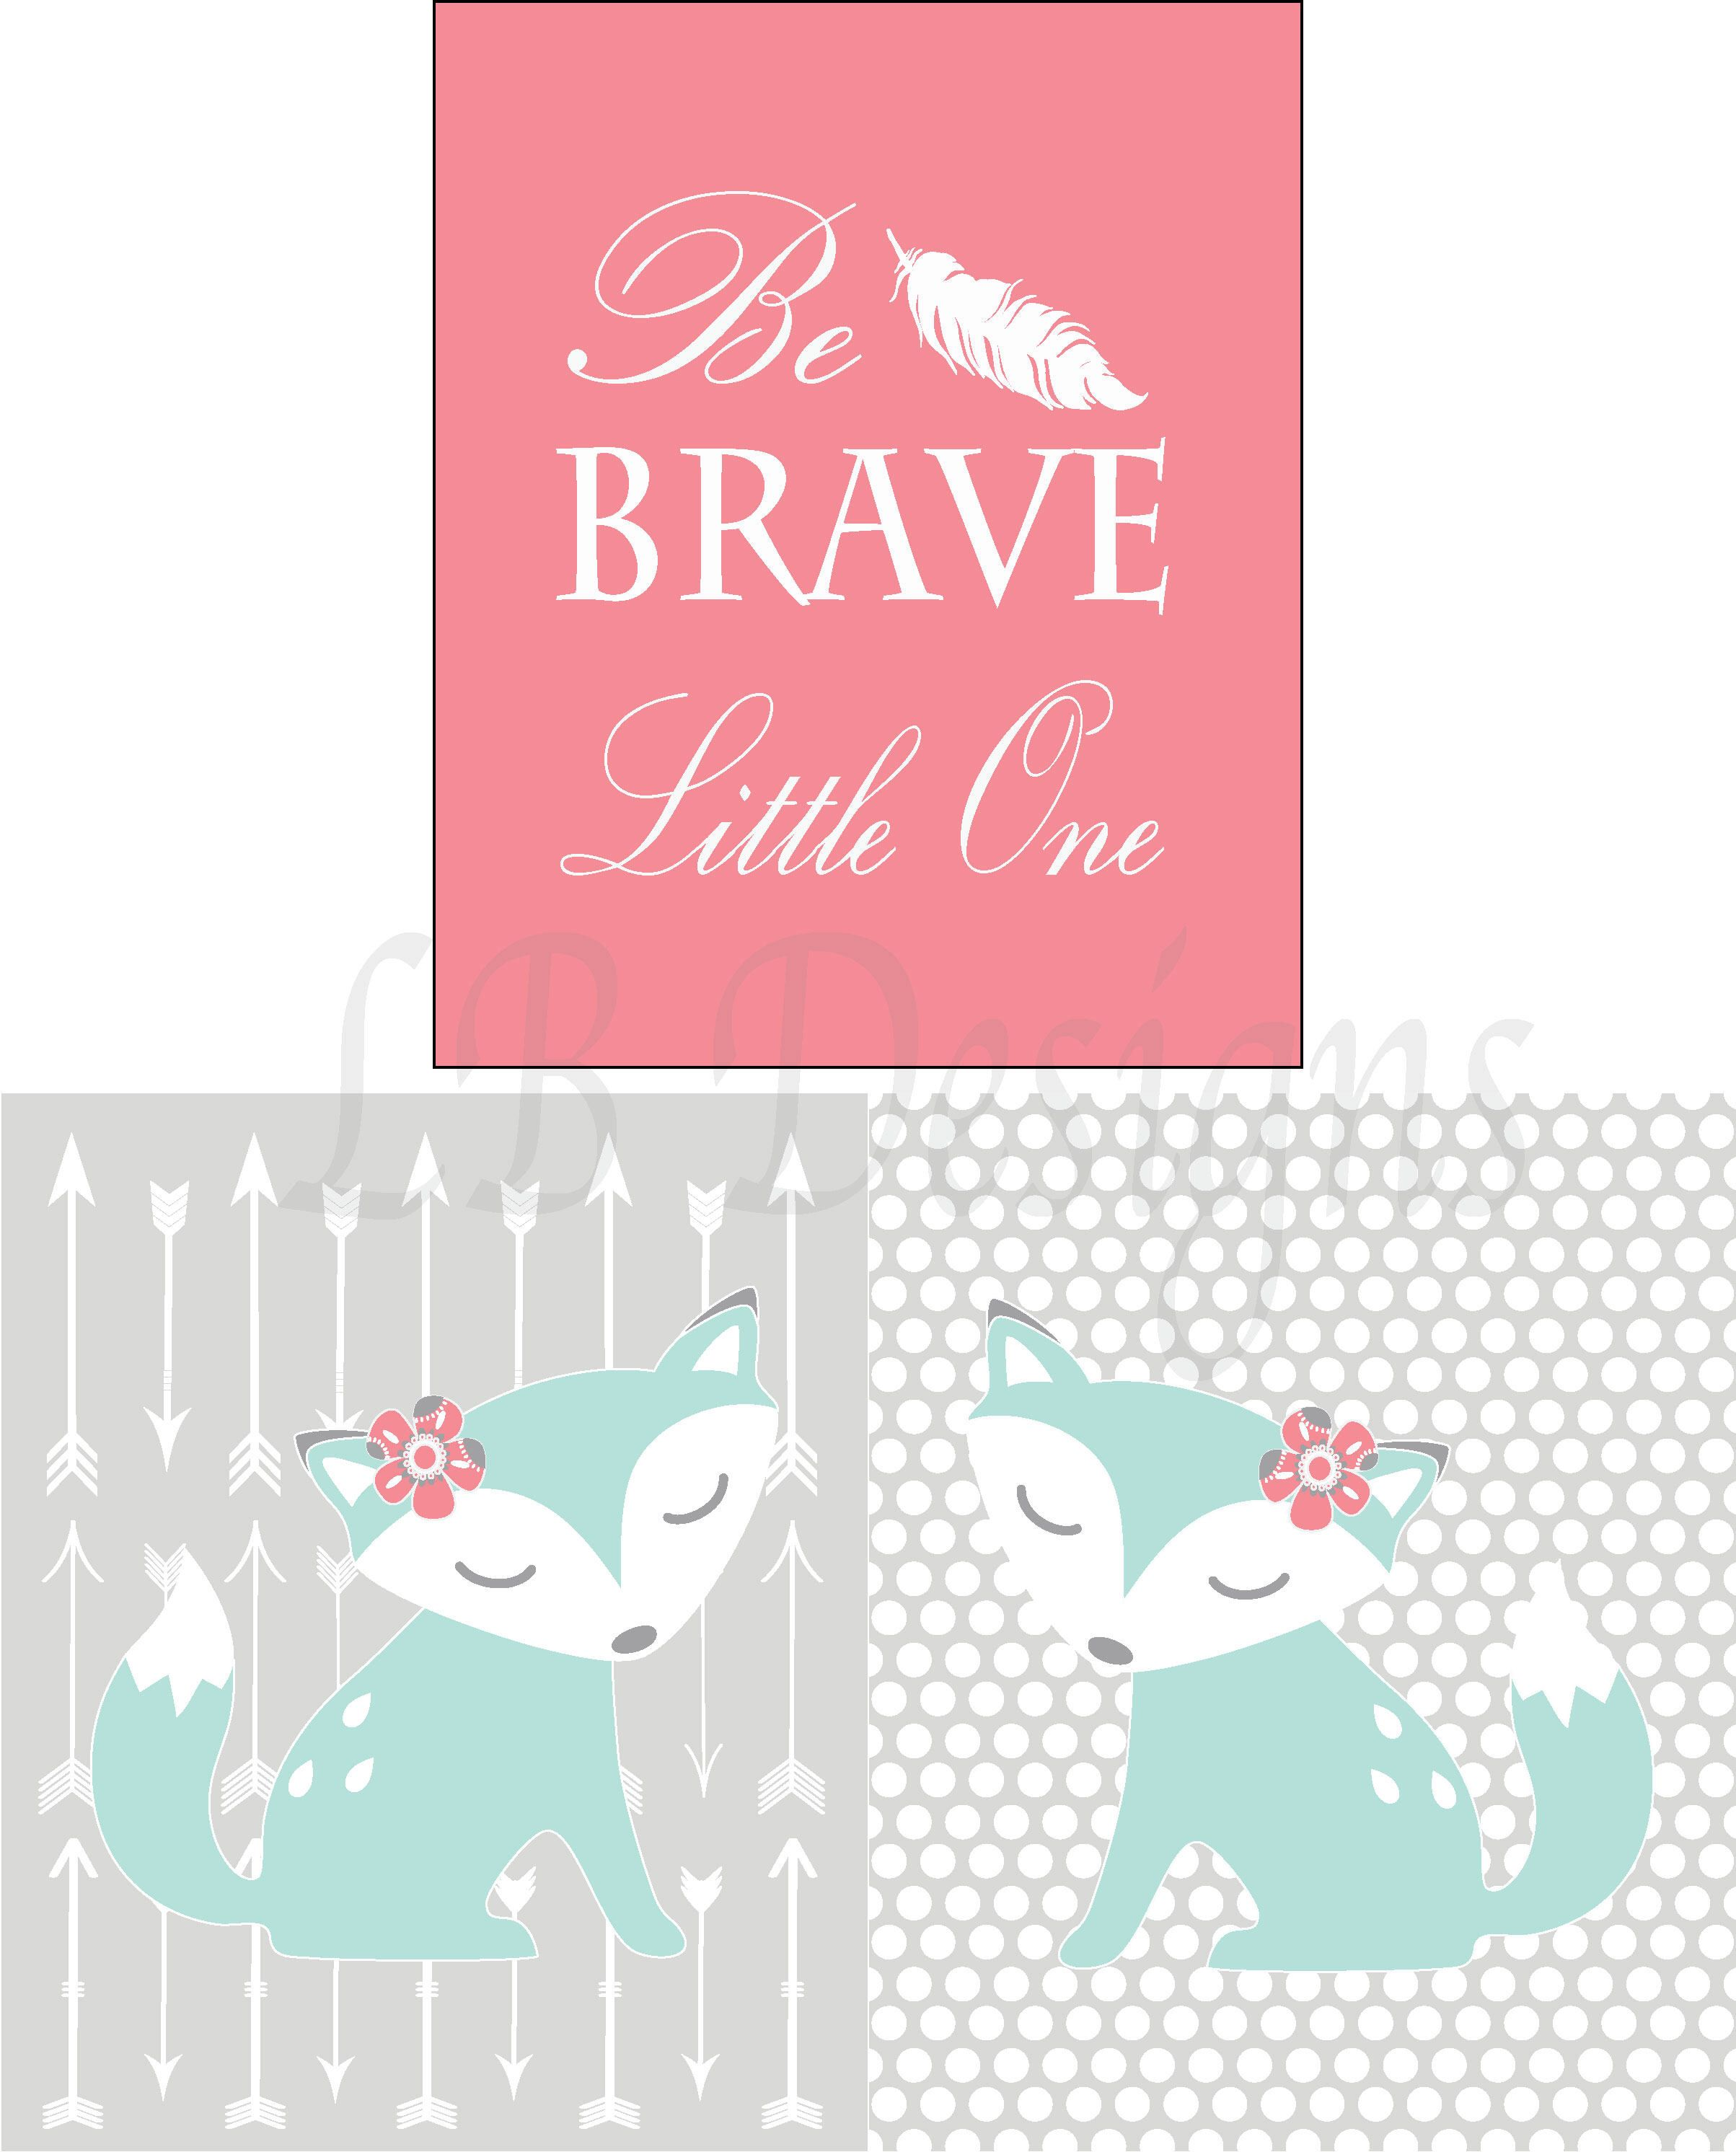 Baby Girl Woodland Nursery Print Girl Fox Nursery Decor Coral and